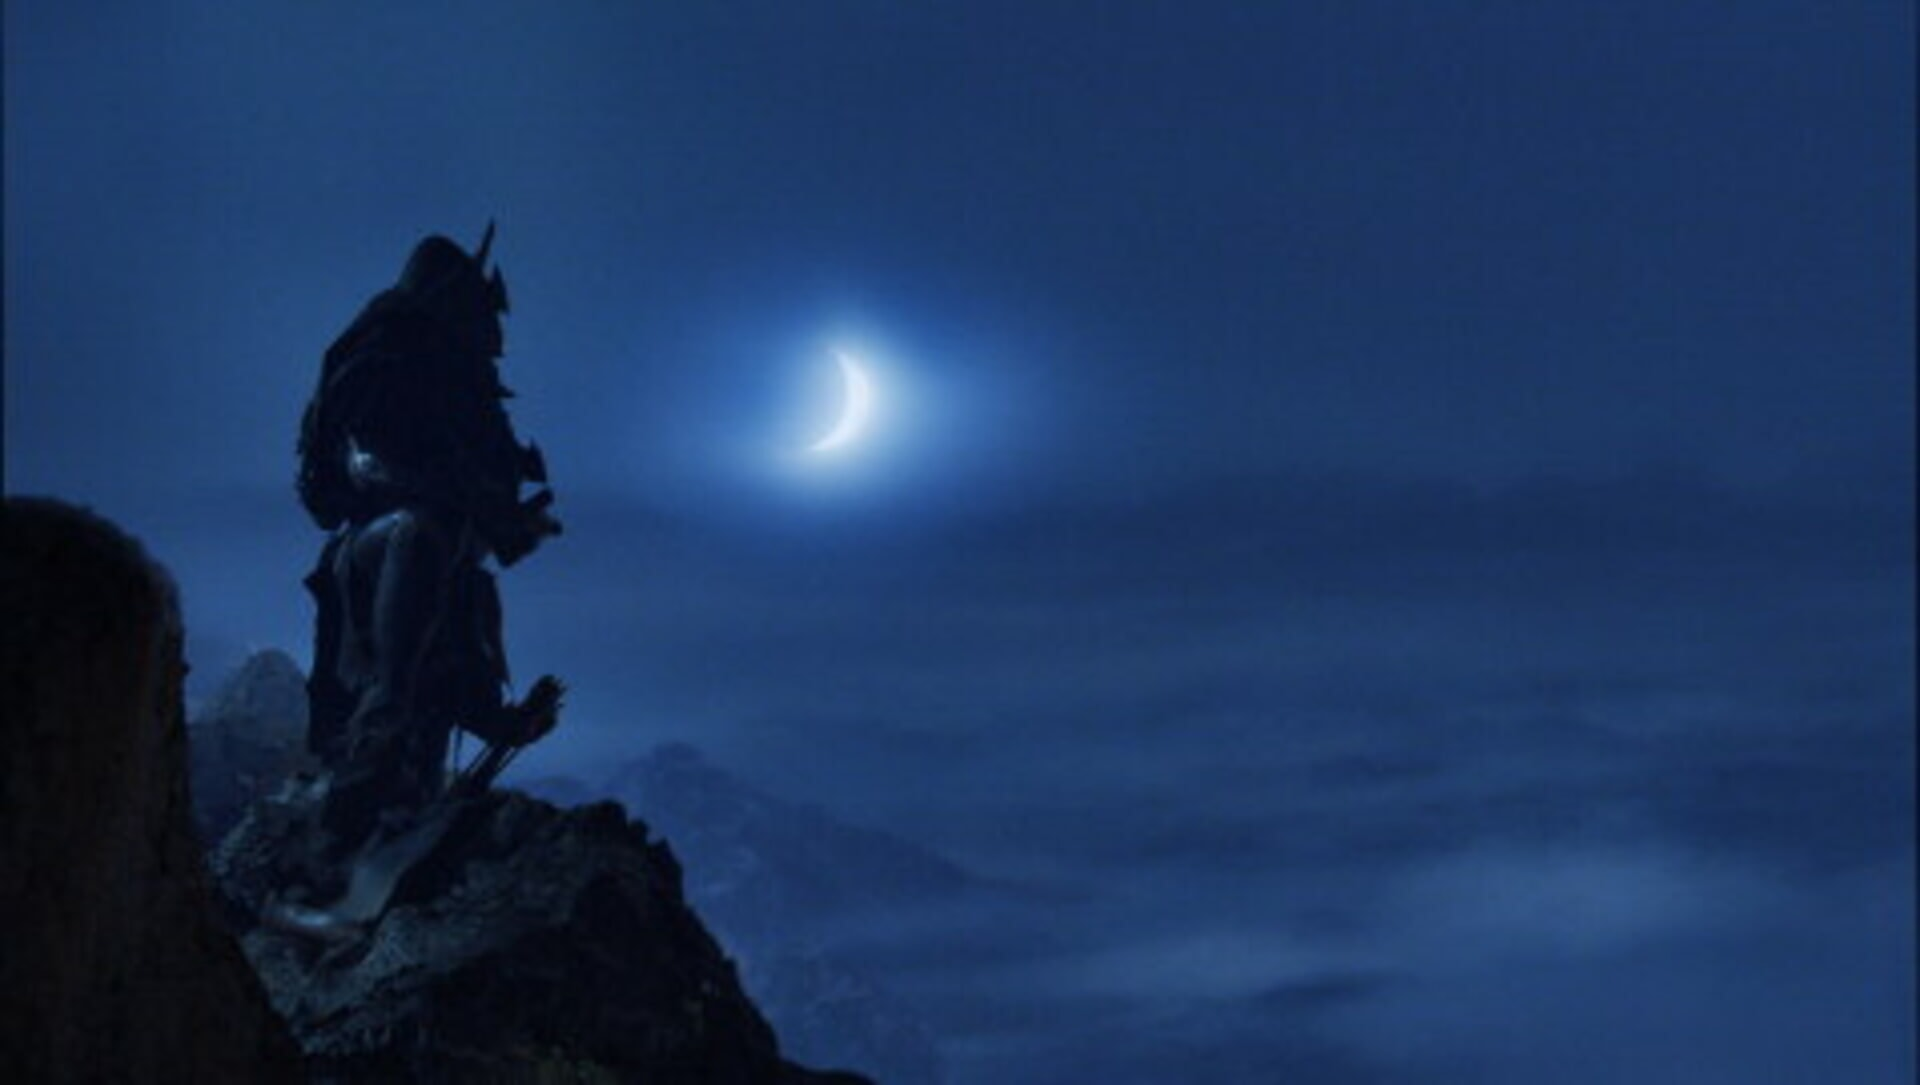 The Lord of the Rings: The Two Towers - Image 34